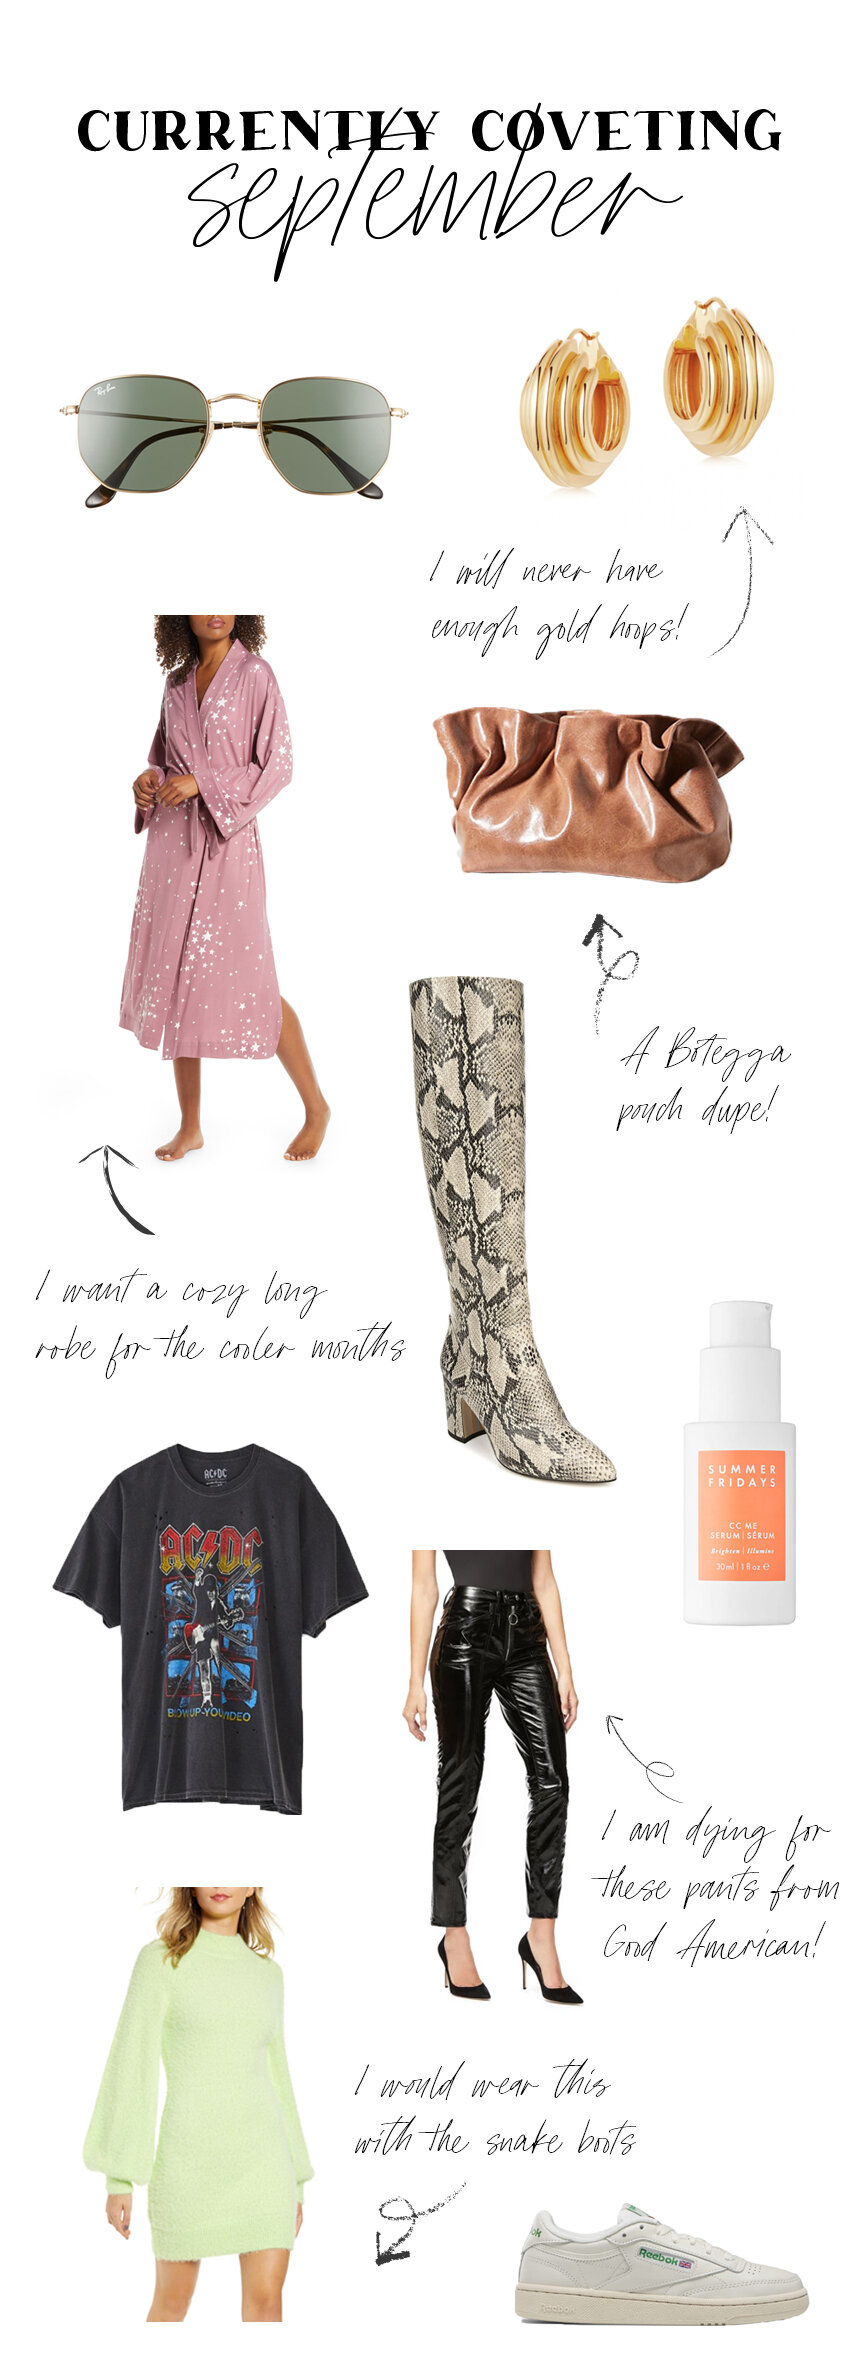 currently-coveting-sept.jpg